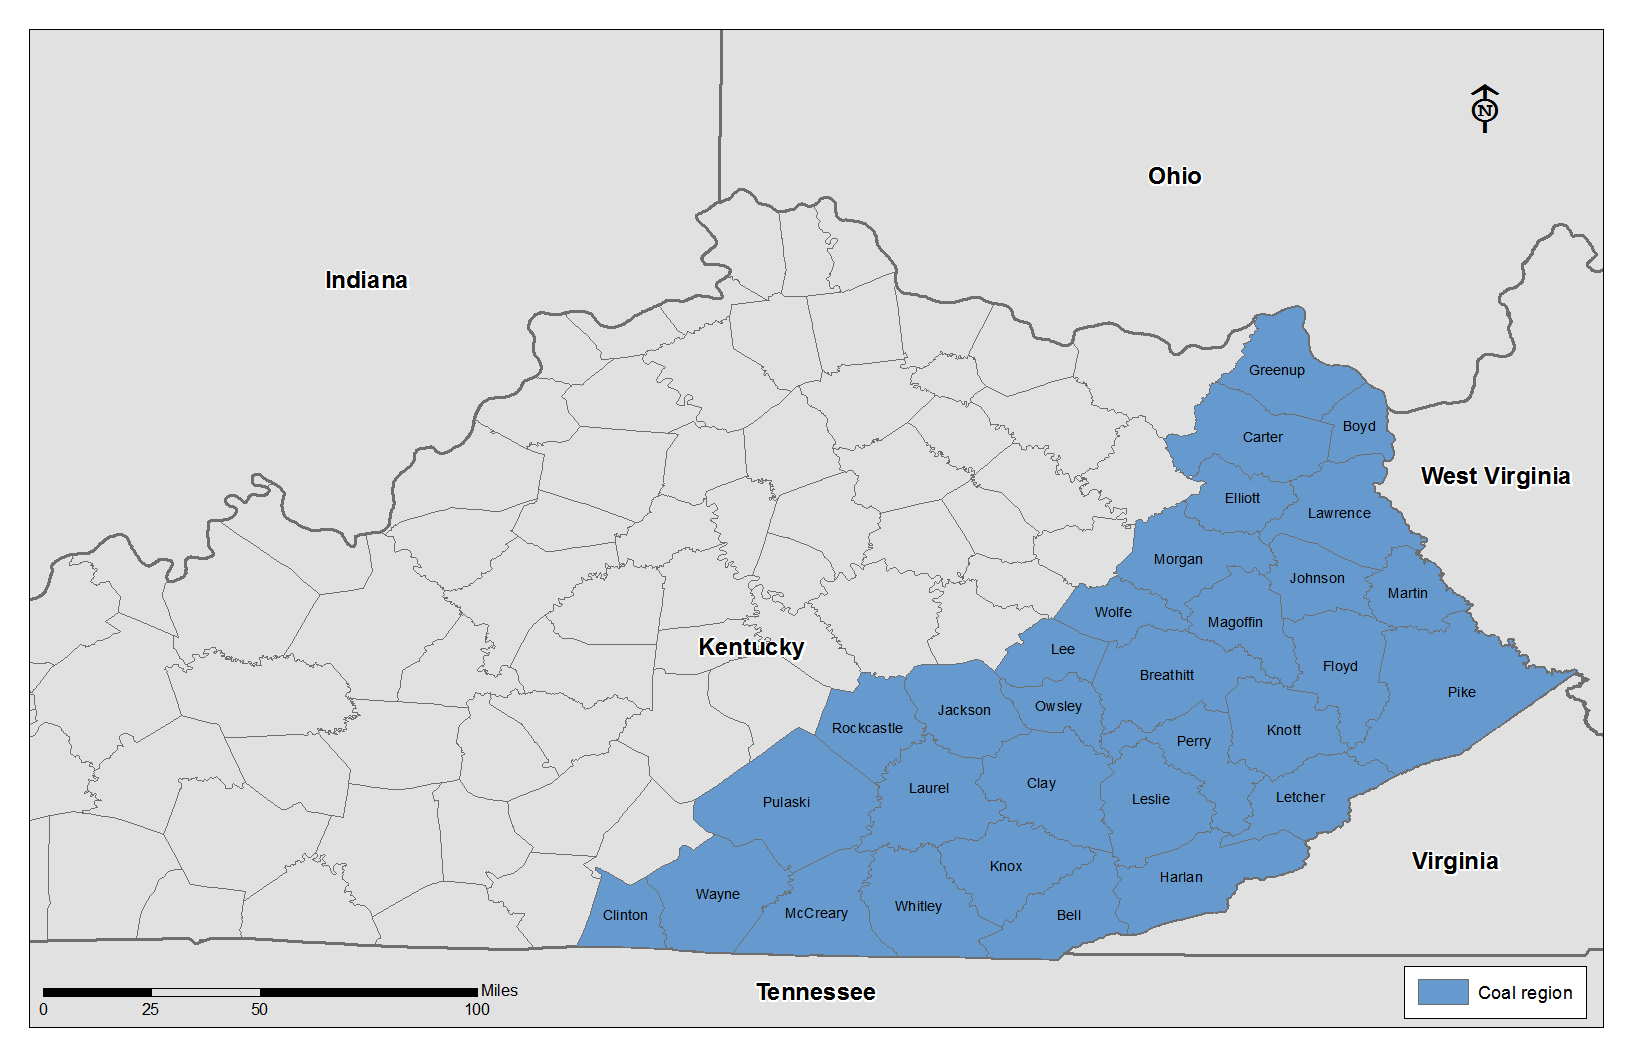 Roughly 31 counties make up eastern Kentucky coal country.